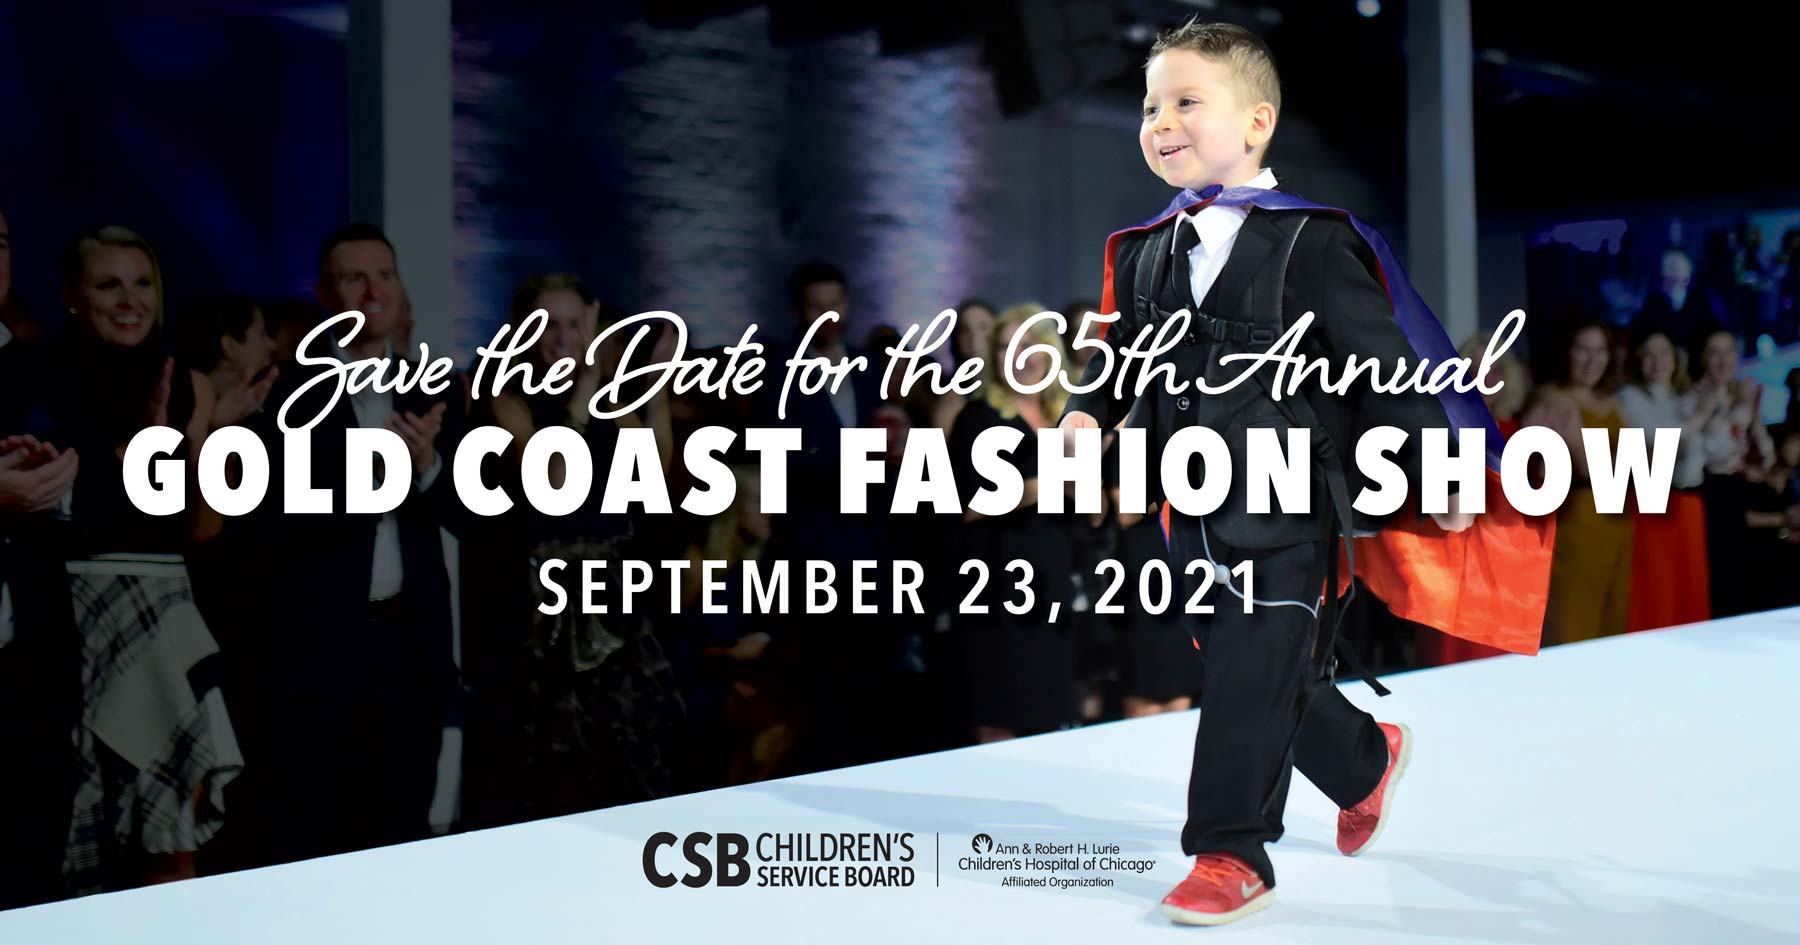 Gold Coast Fashion Show 2021